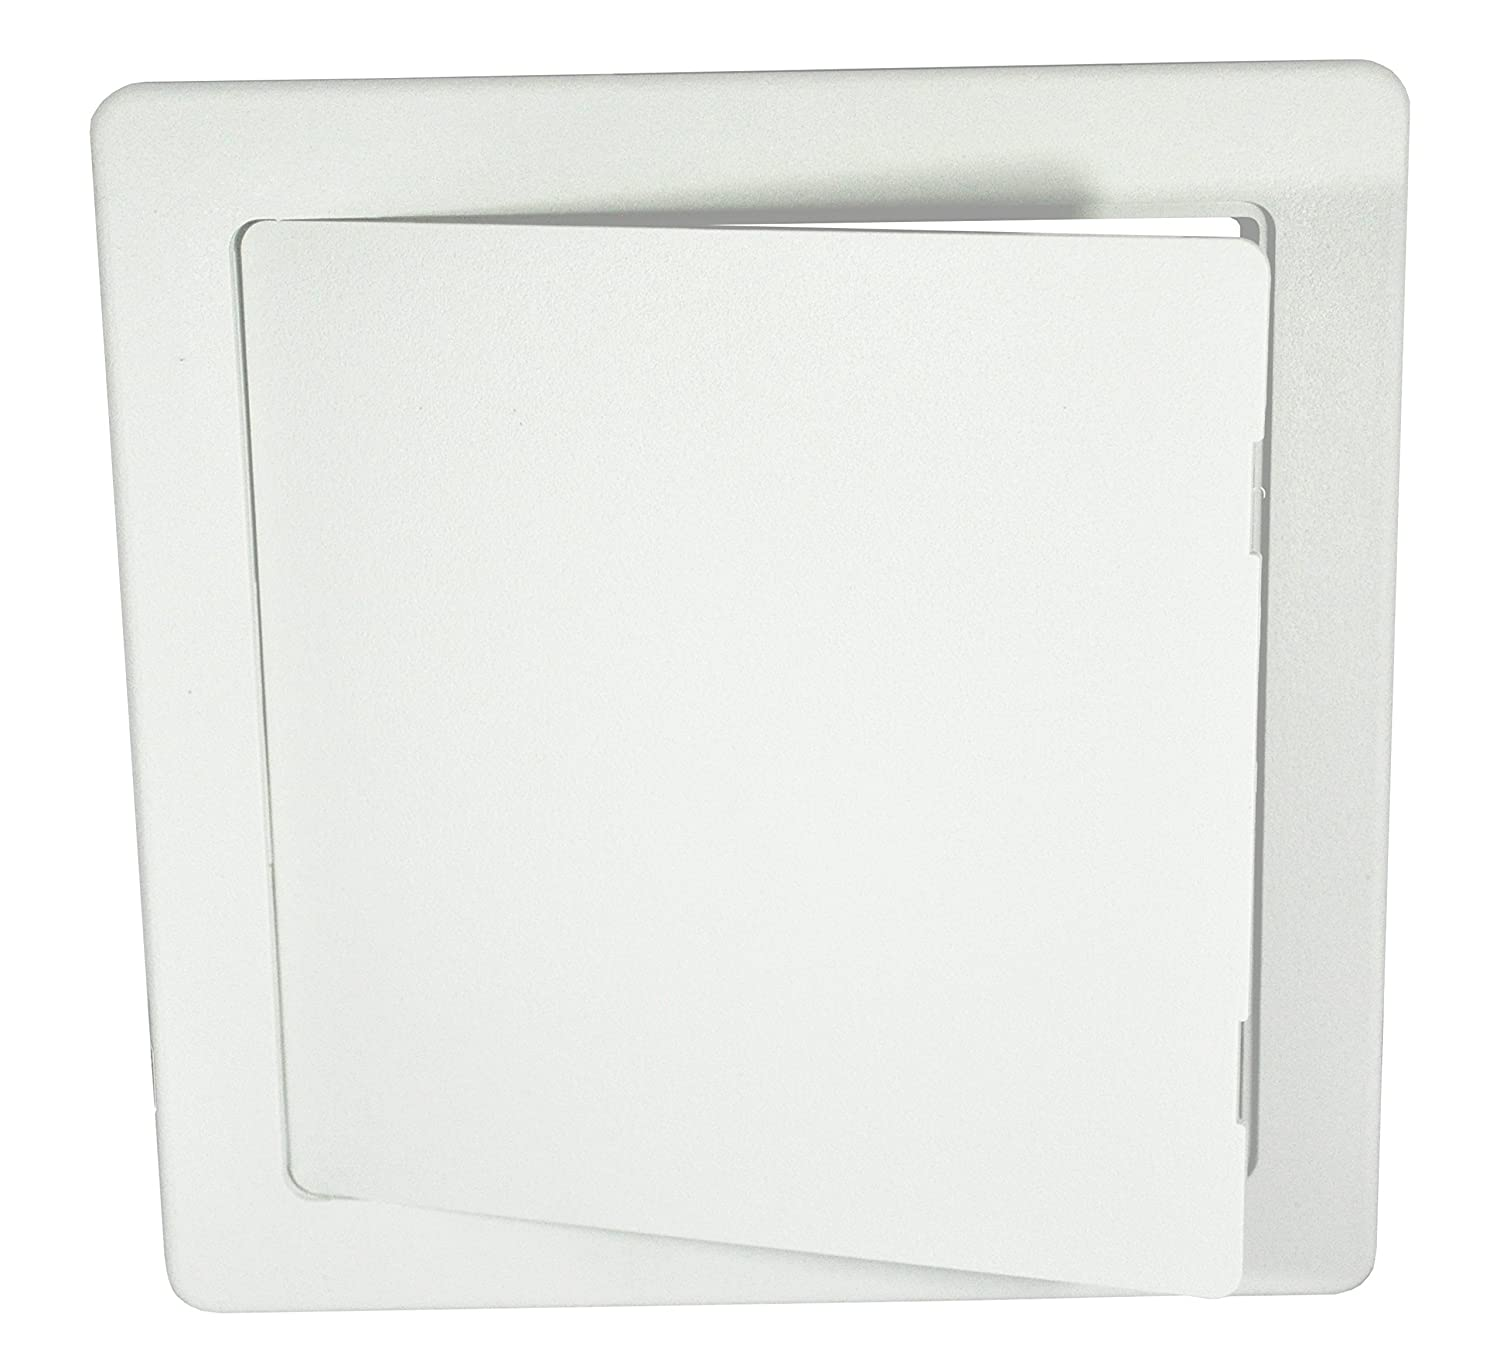 Surface Fit White ABS Plastic Access Panel / Inpsection Hatch 300mm x 300mm (12' x 12') - Hide: taps, valves, wiring, meters etc.... Hardware Master